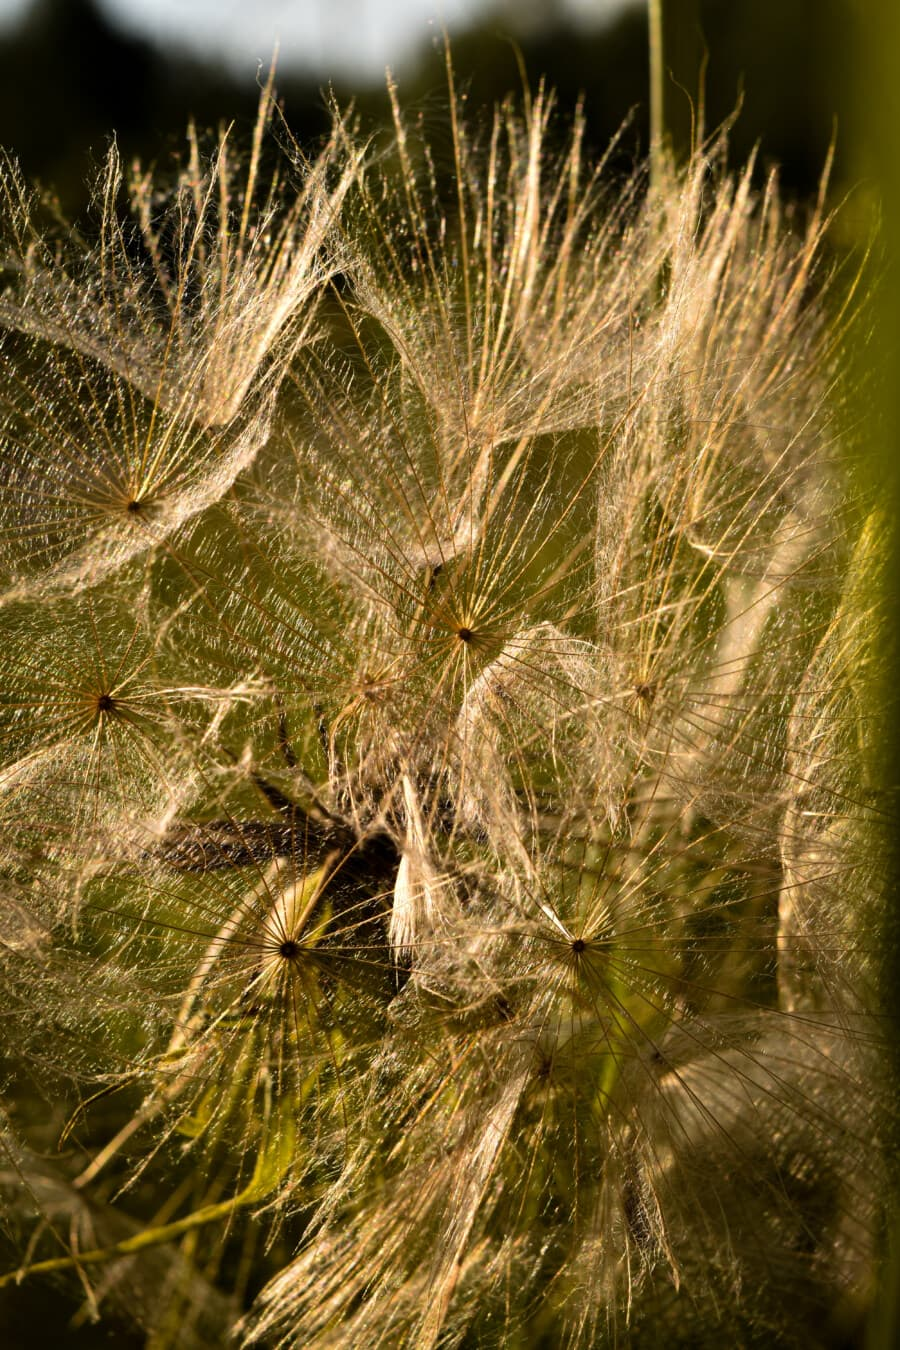 dandelion, close-up, photography, macro, seed, nature, flora, summer, color, outdoors